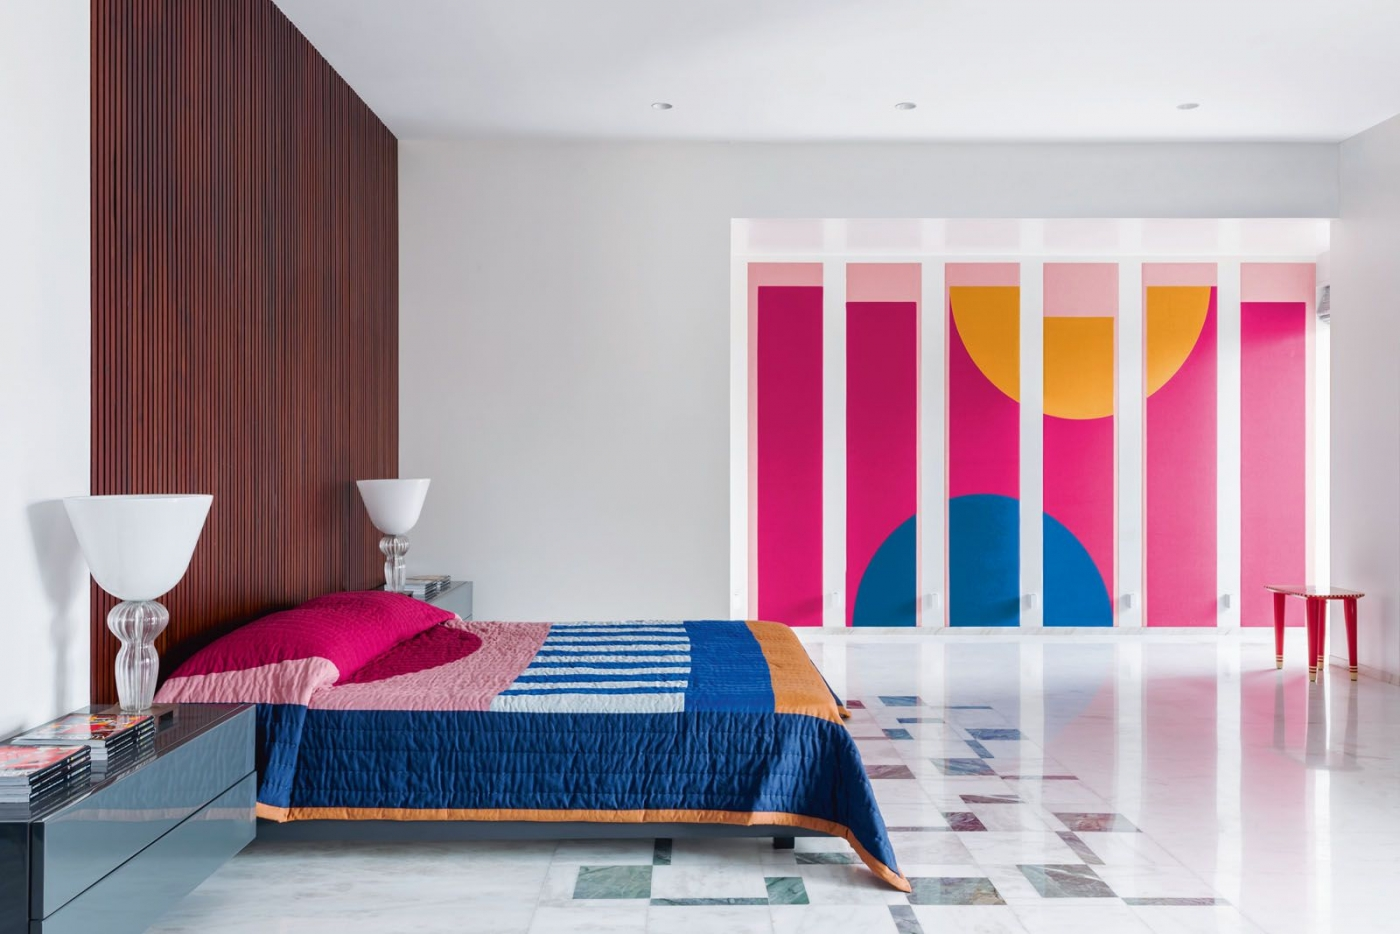 luxury home Get The Look Of This Colorful Luxury Home Inspired By Pop Art Get The Look Of This Colorful Luxury Home Inspired By Pop Art feature image 1 1400x934